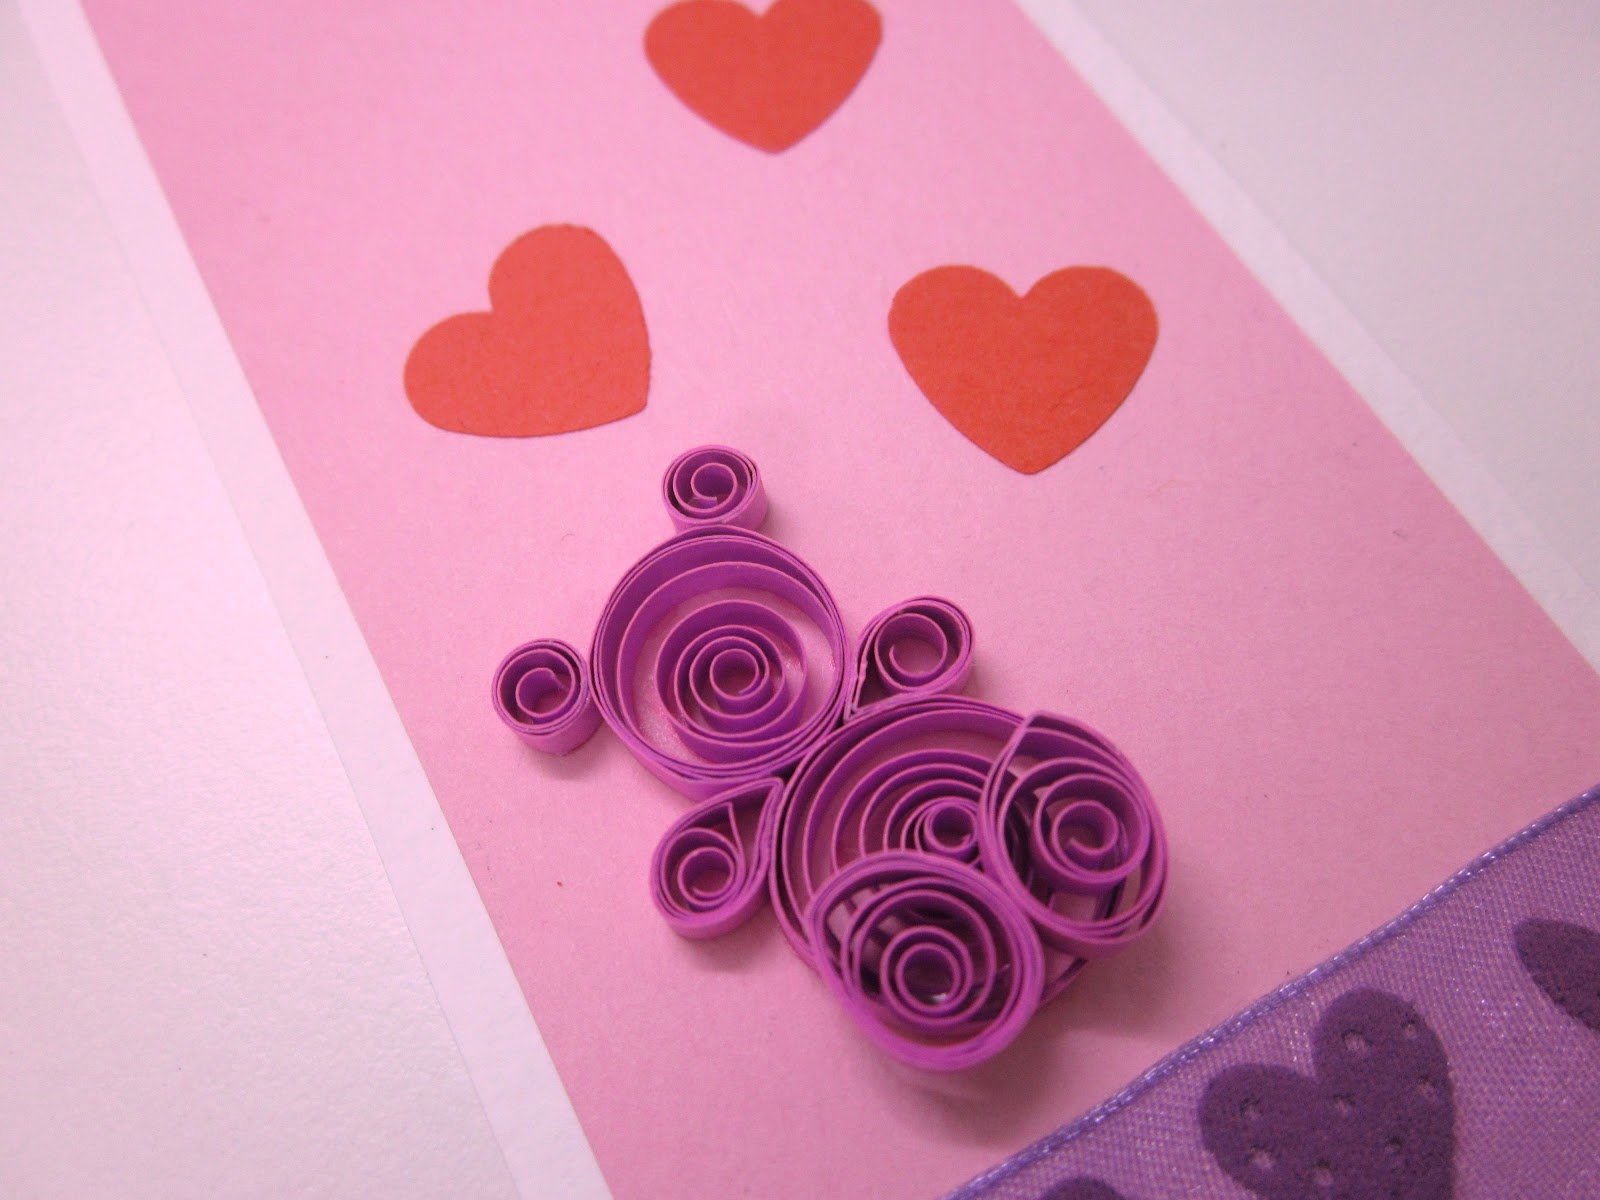 Yuenie S Fancies Handmade Quilled Pop Up Cards Bookmarks Gifts